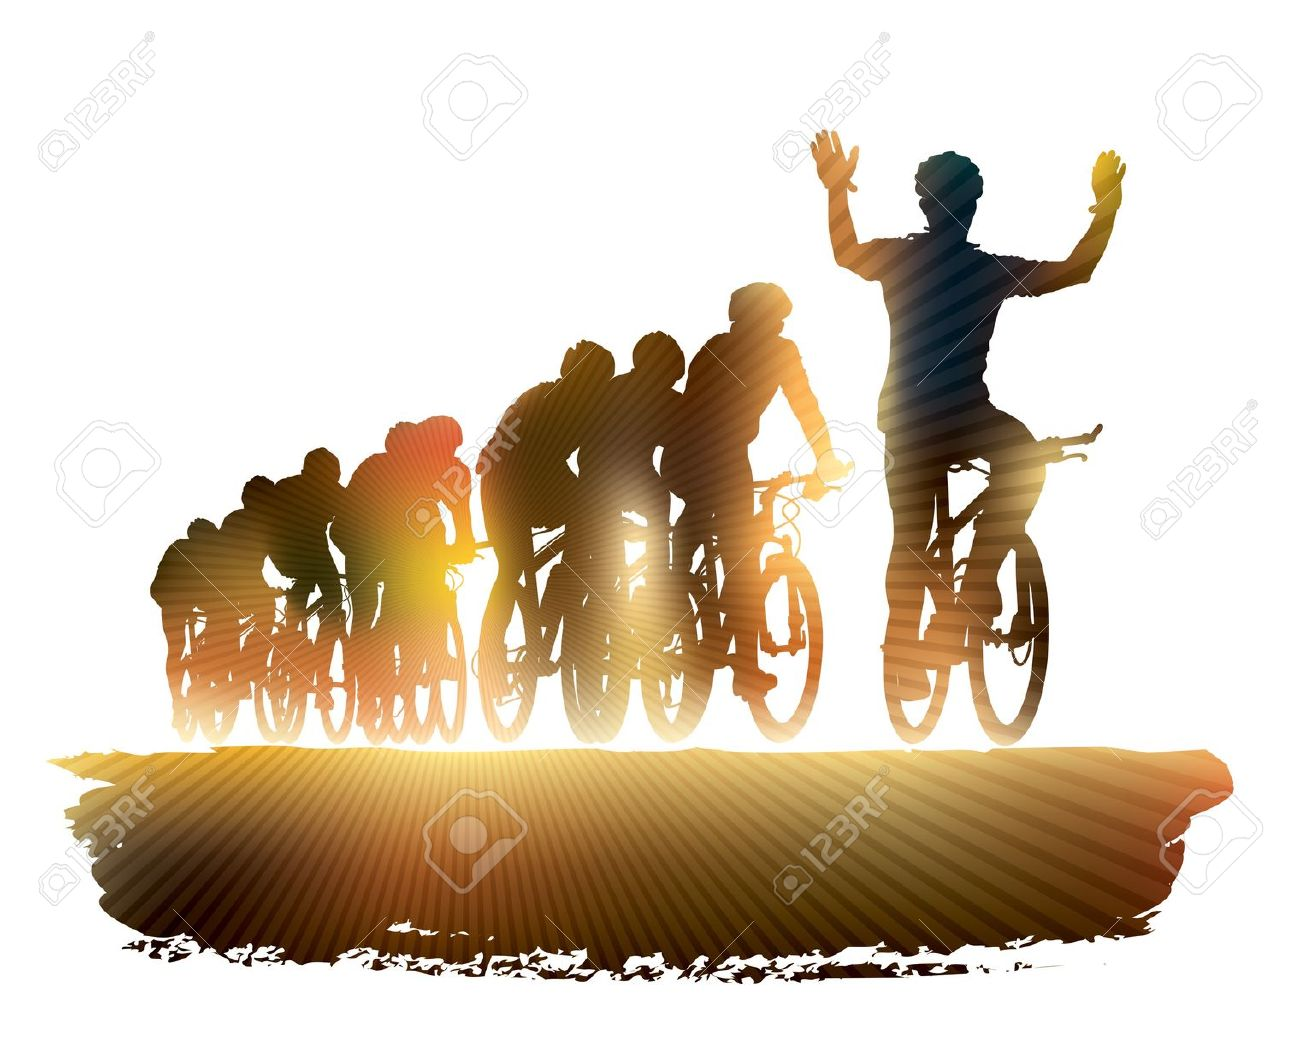 Group Of Cyclist In The Bicycle Race. Sport Illustration. Royalty.